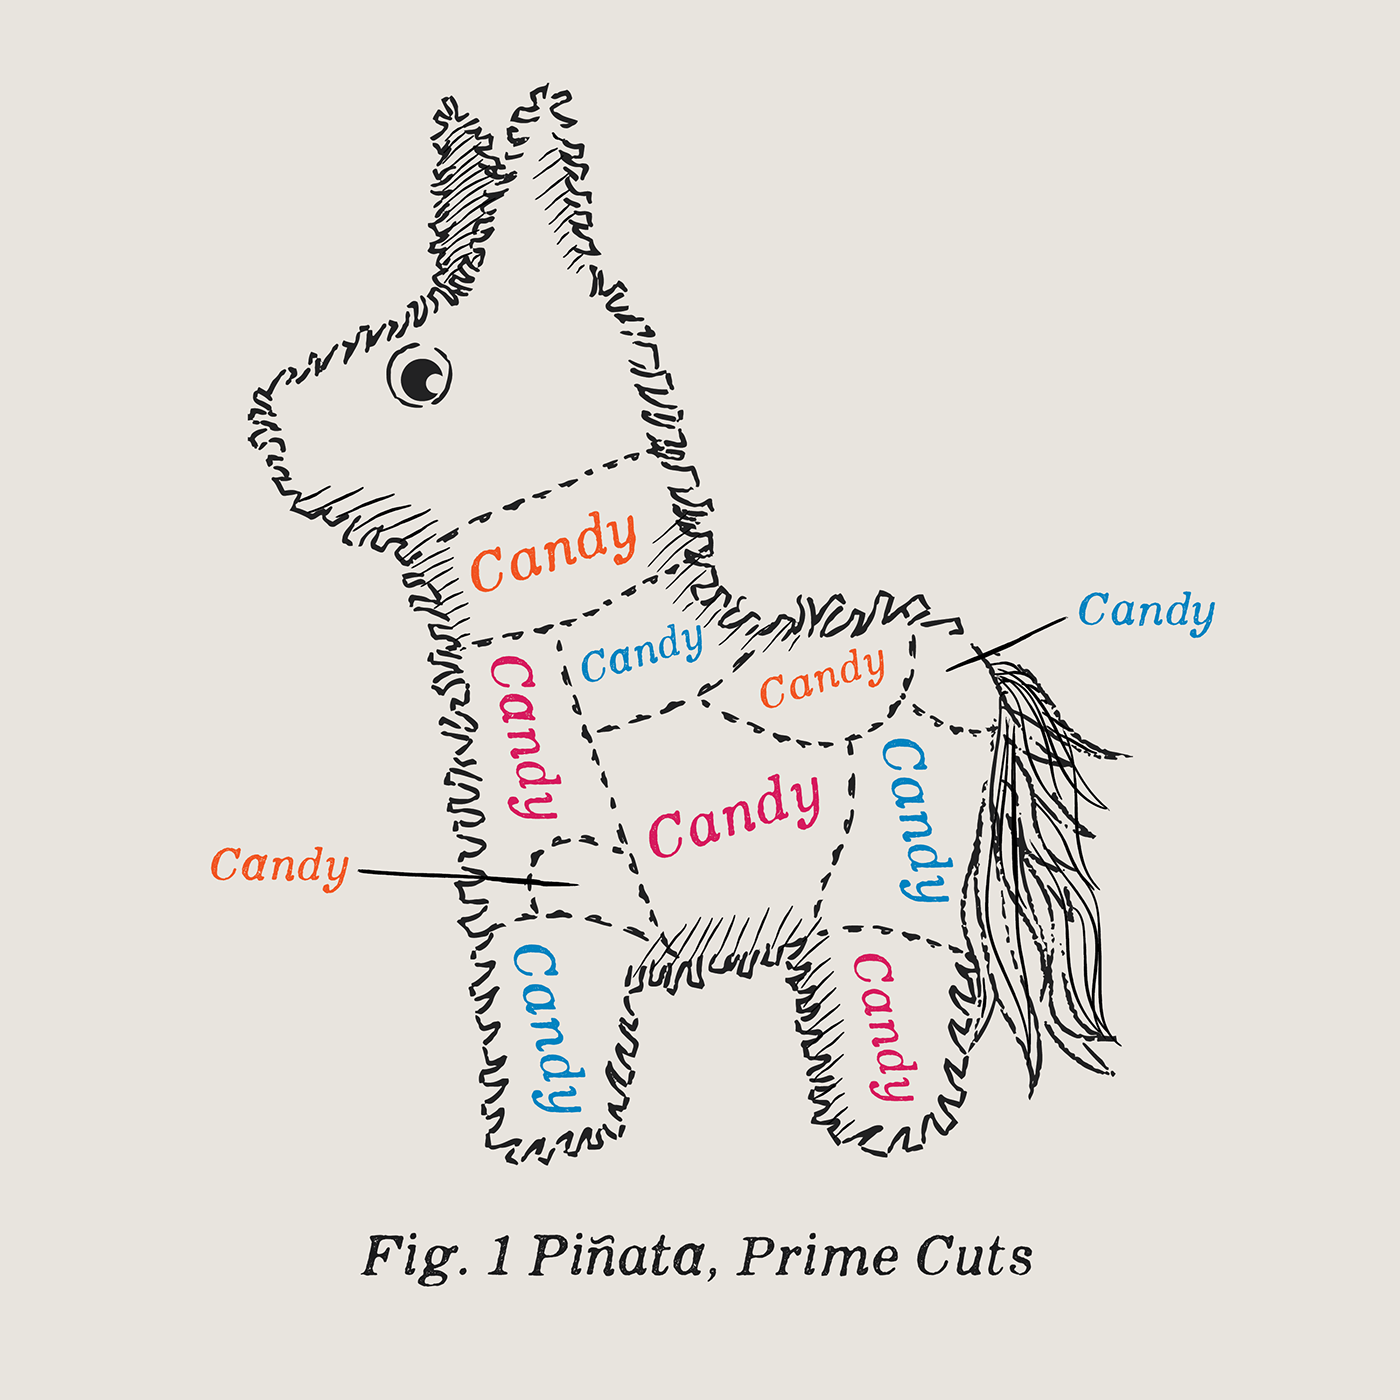 Pinata Butcher Diagram T Shirt Mental Floss On Behance